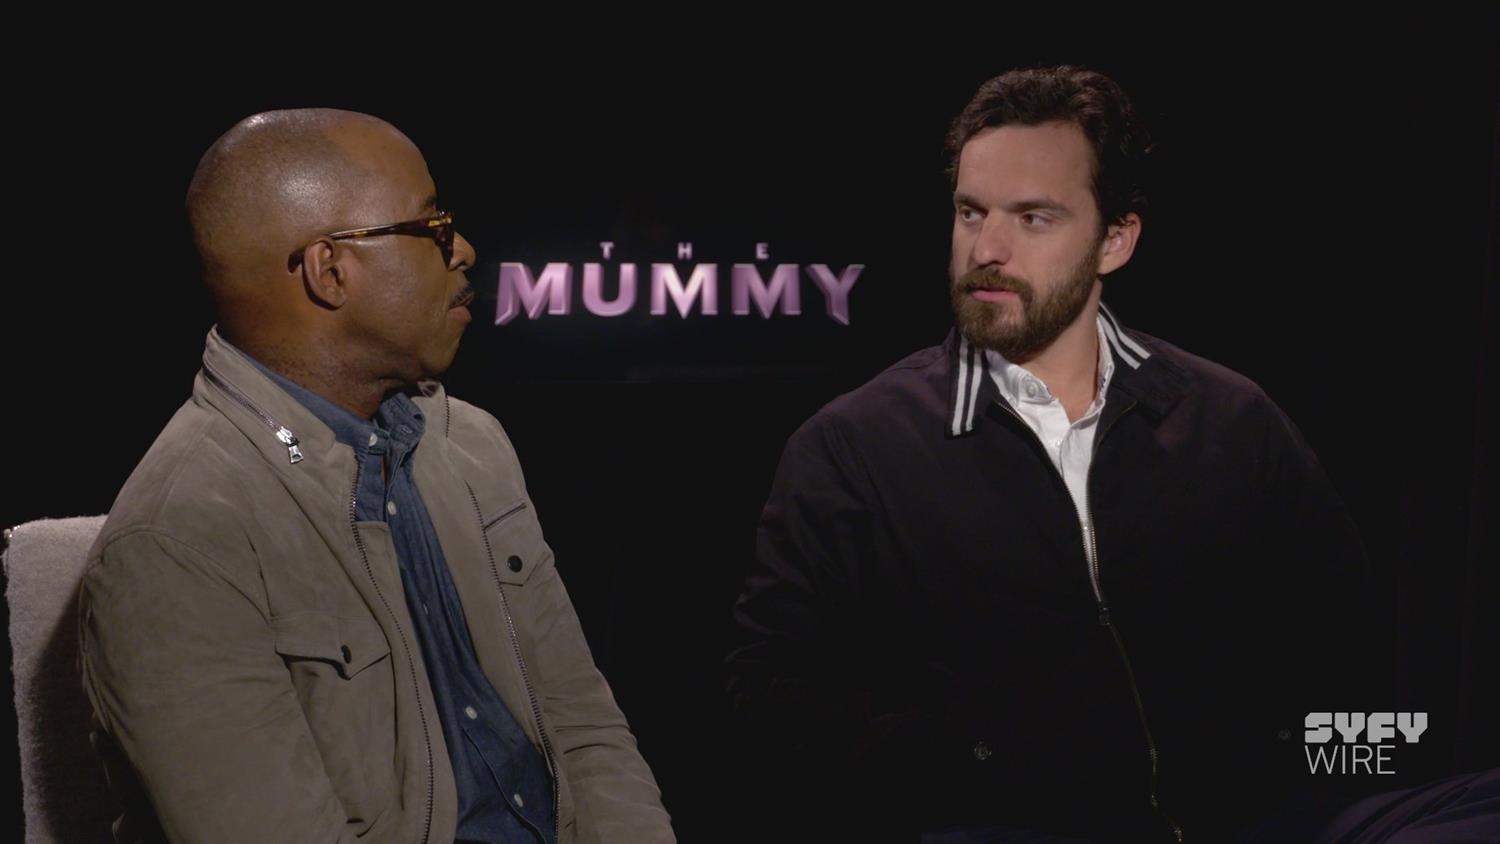 The Mummy Cast: What Monster We'd Team Up With